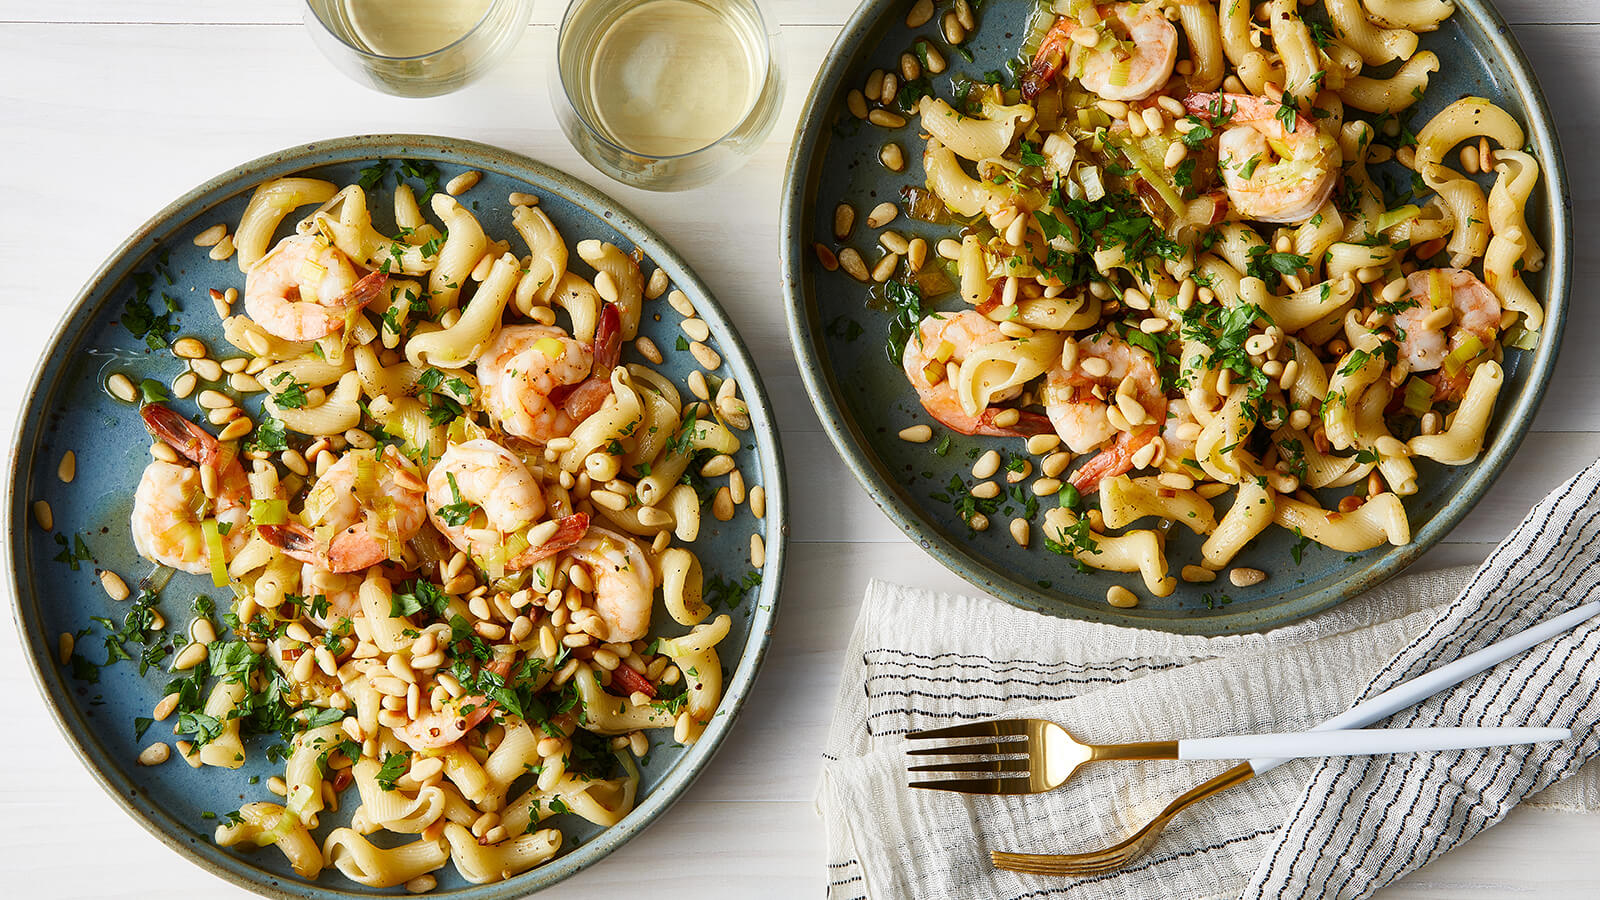 Sanremo Gigli with Prawns and Pine Nuts